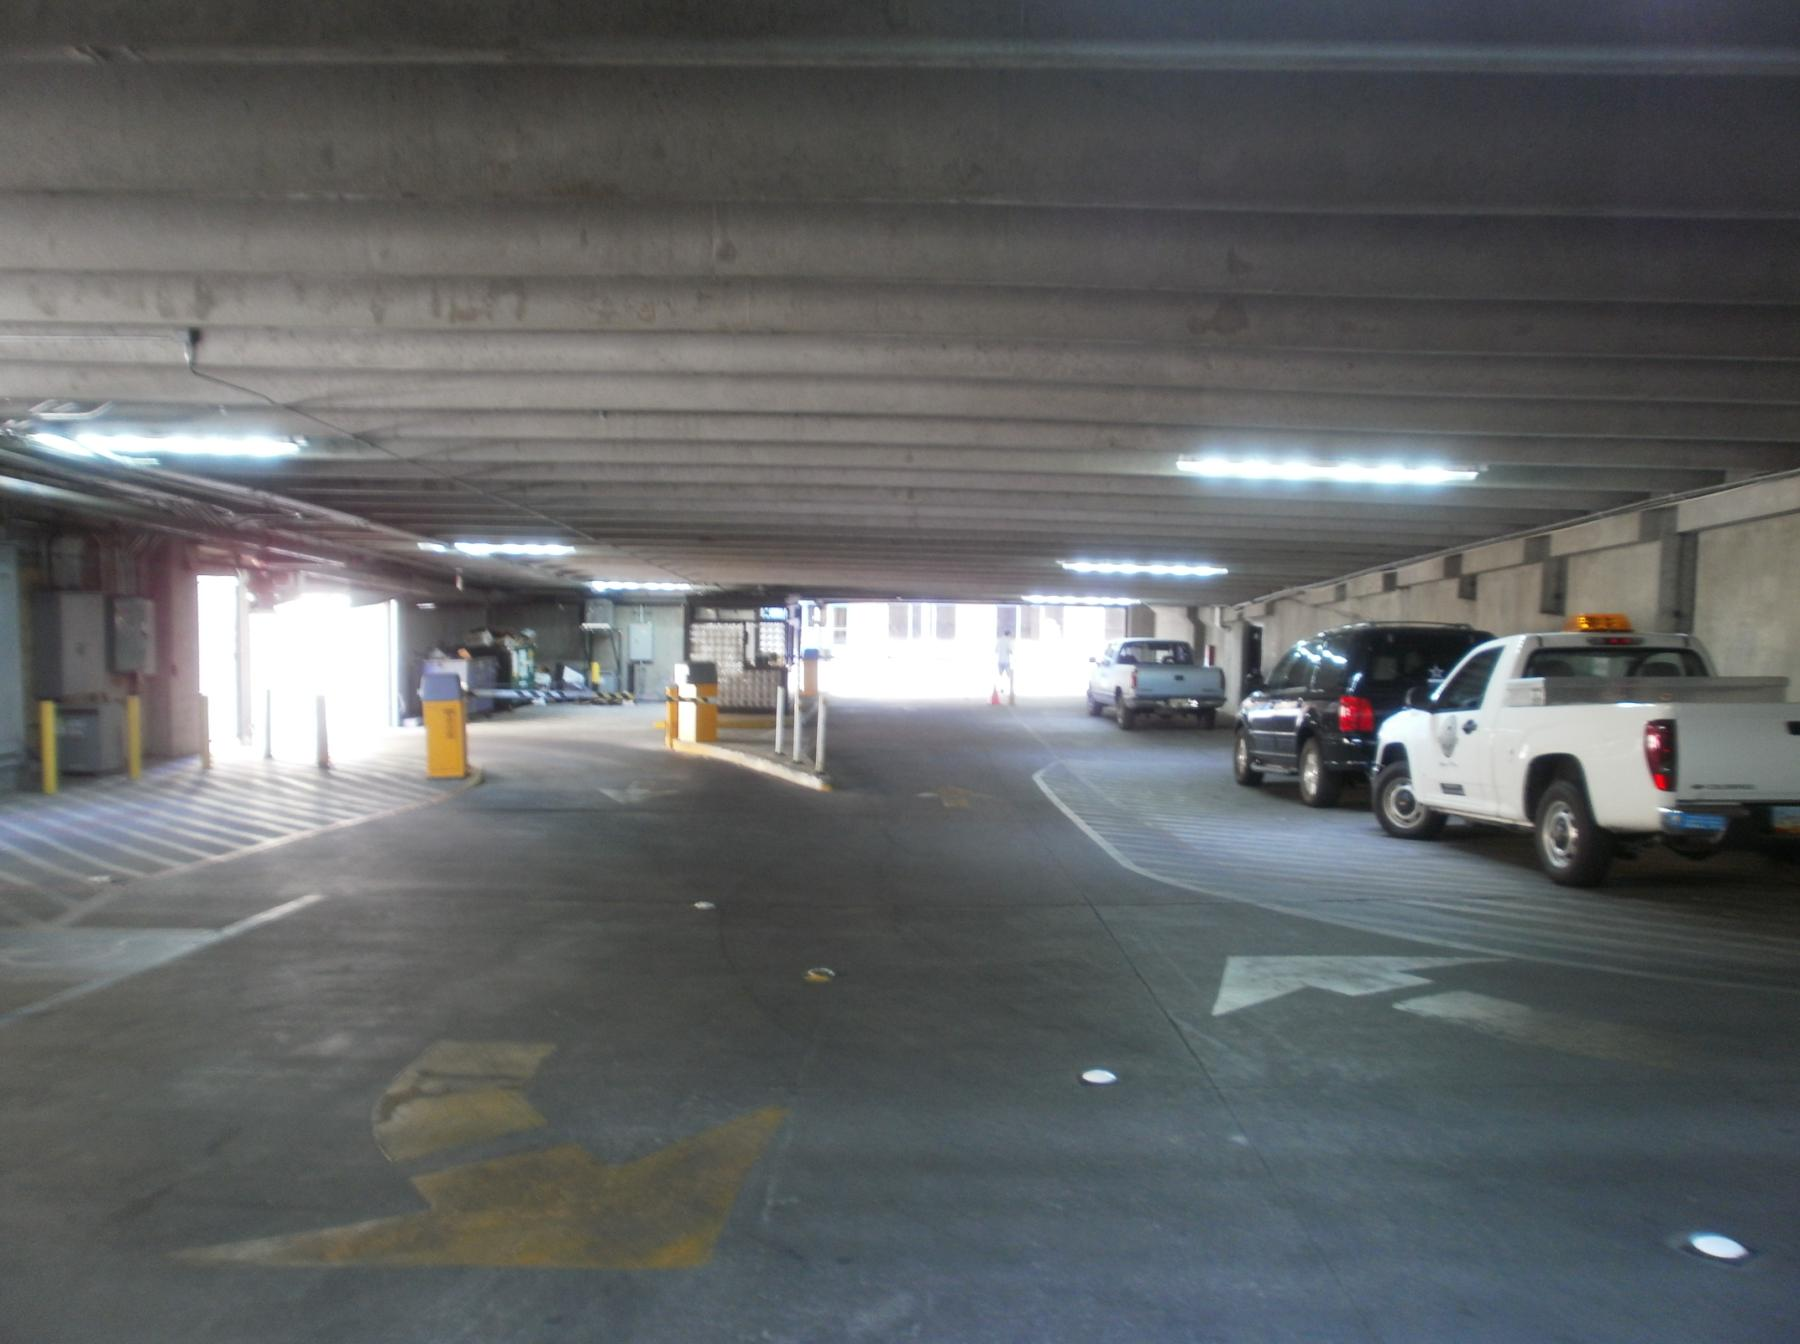 Parking Garage Lighting Upgrades